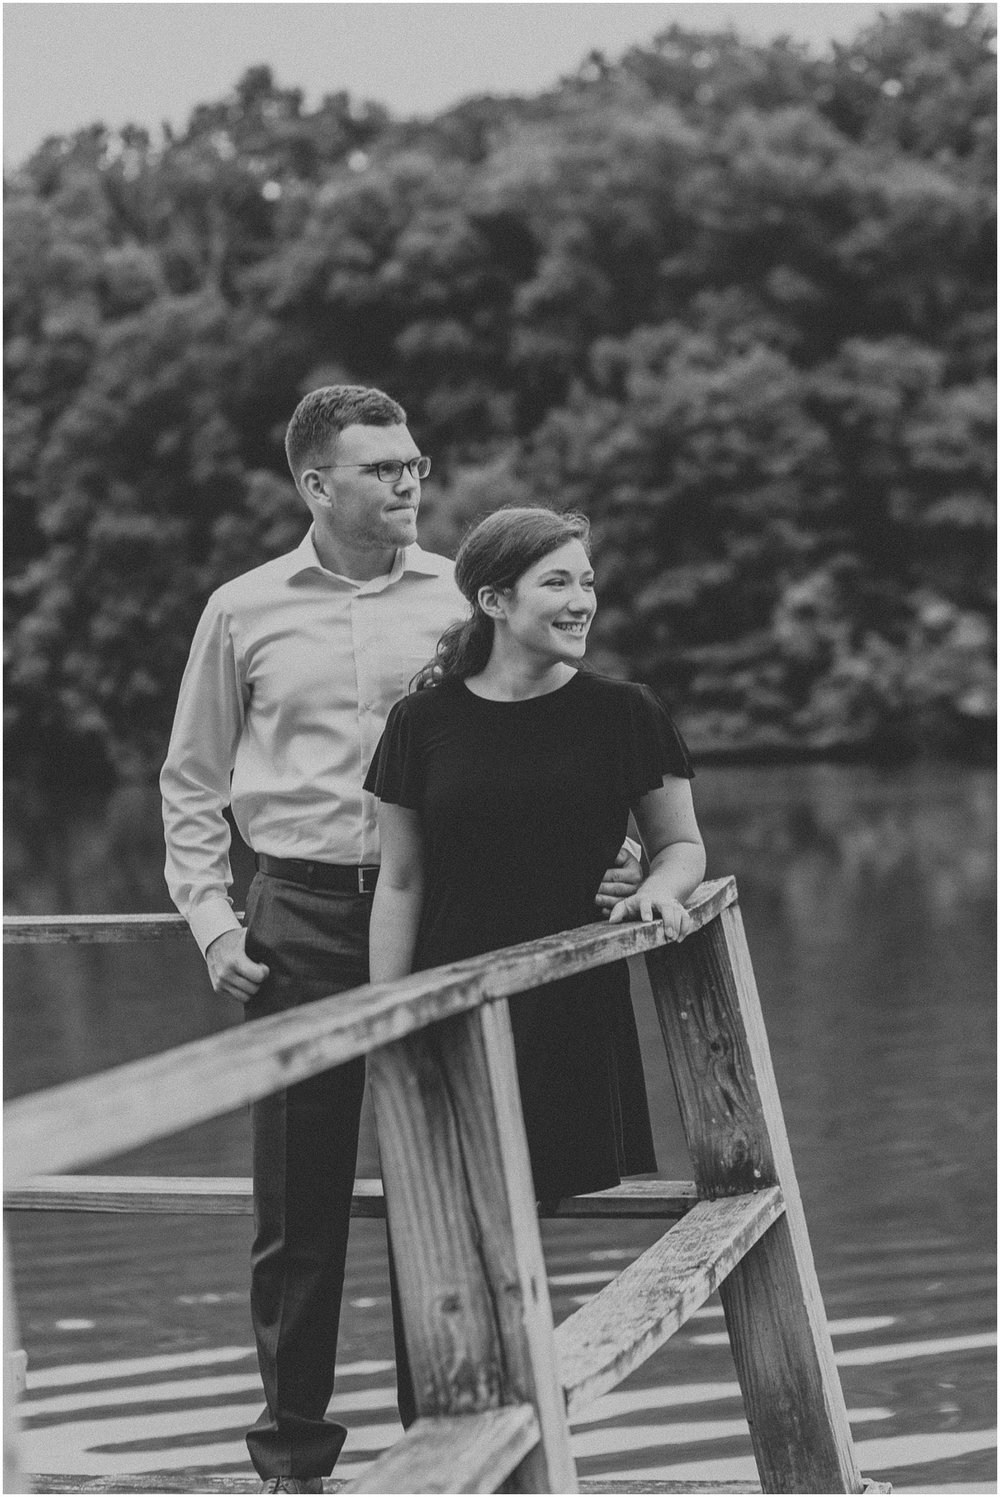 gifford pinchot state park-engagement-anniversary-photo session-outdoor photos-husband-wife-central pennsylvania_0333.jpg